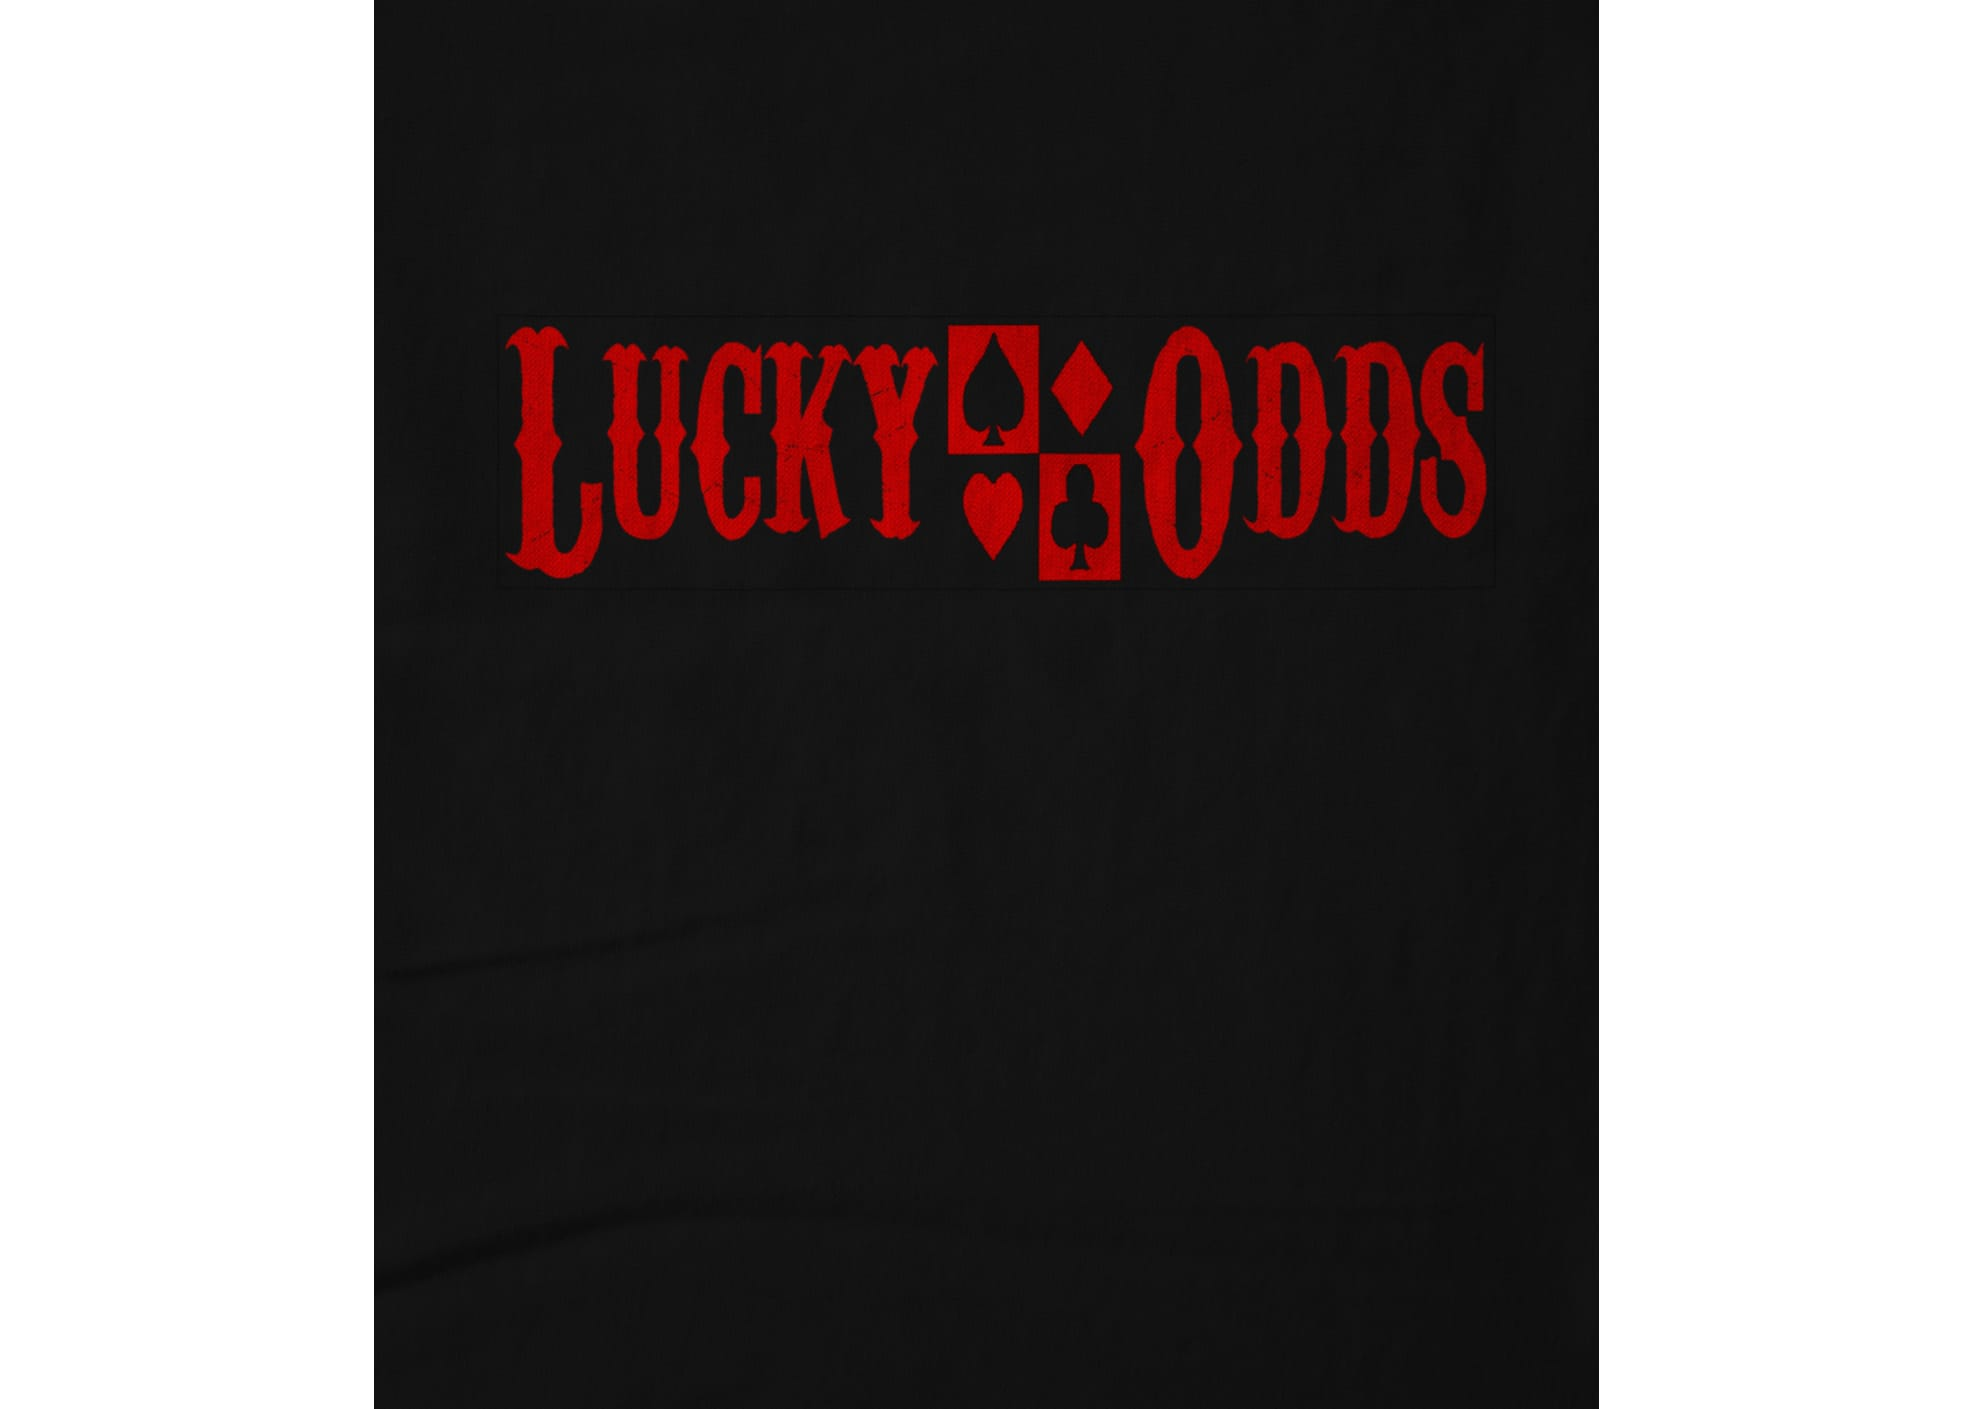 Lucky odds card suit tee 1478817620